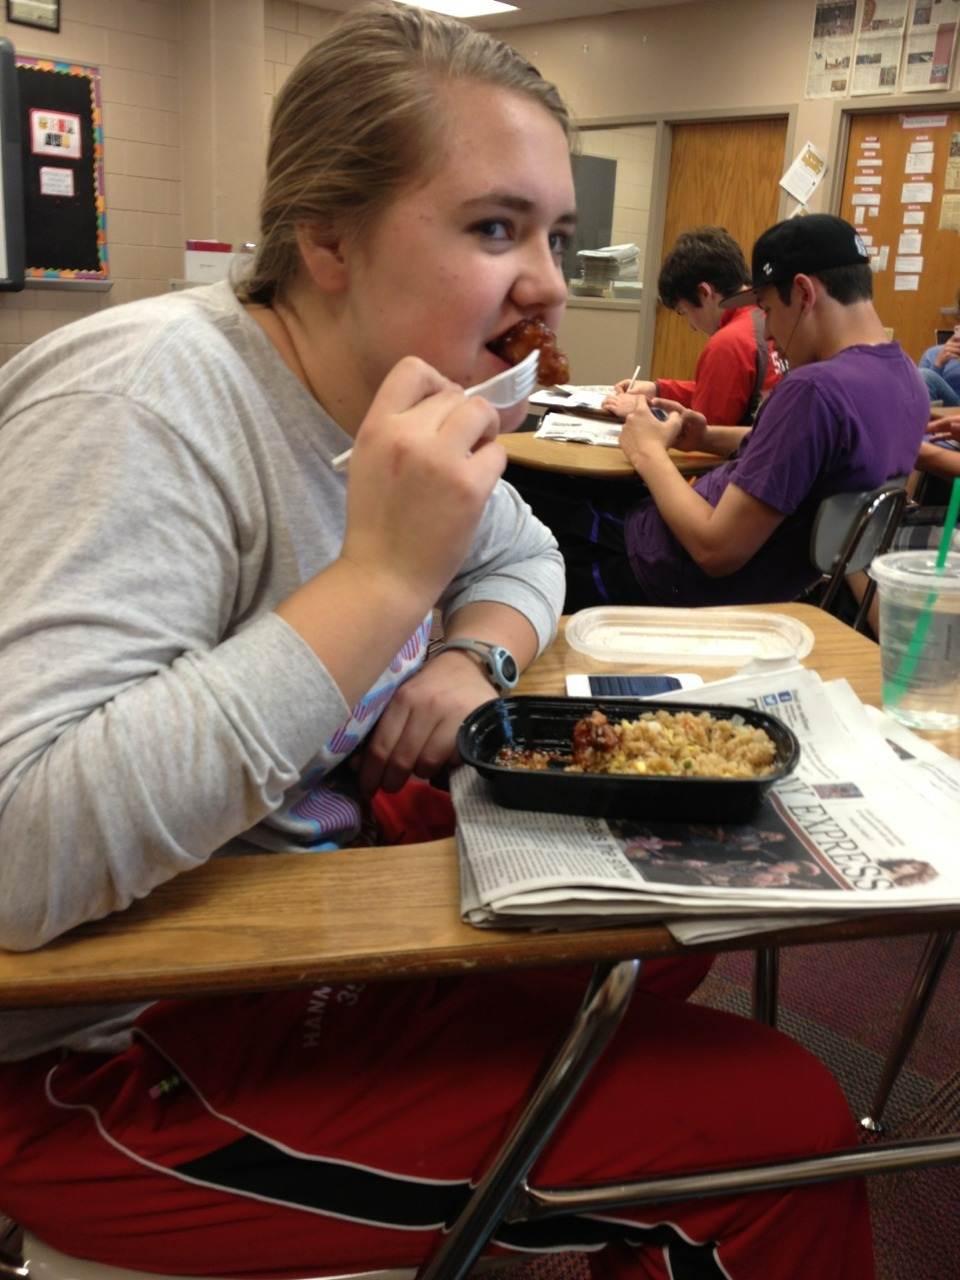 studdedrevolution:  So this girl in my class brings Chinese food every Wednesday. She stares at people while slowly eating her chicken. That's some dramatic poultry